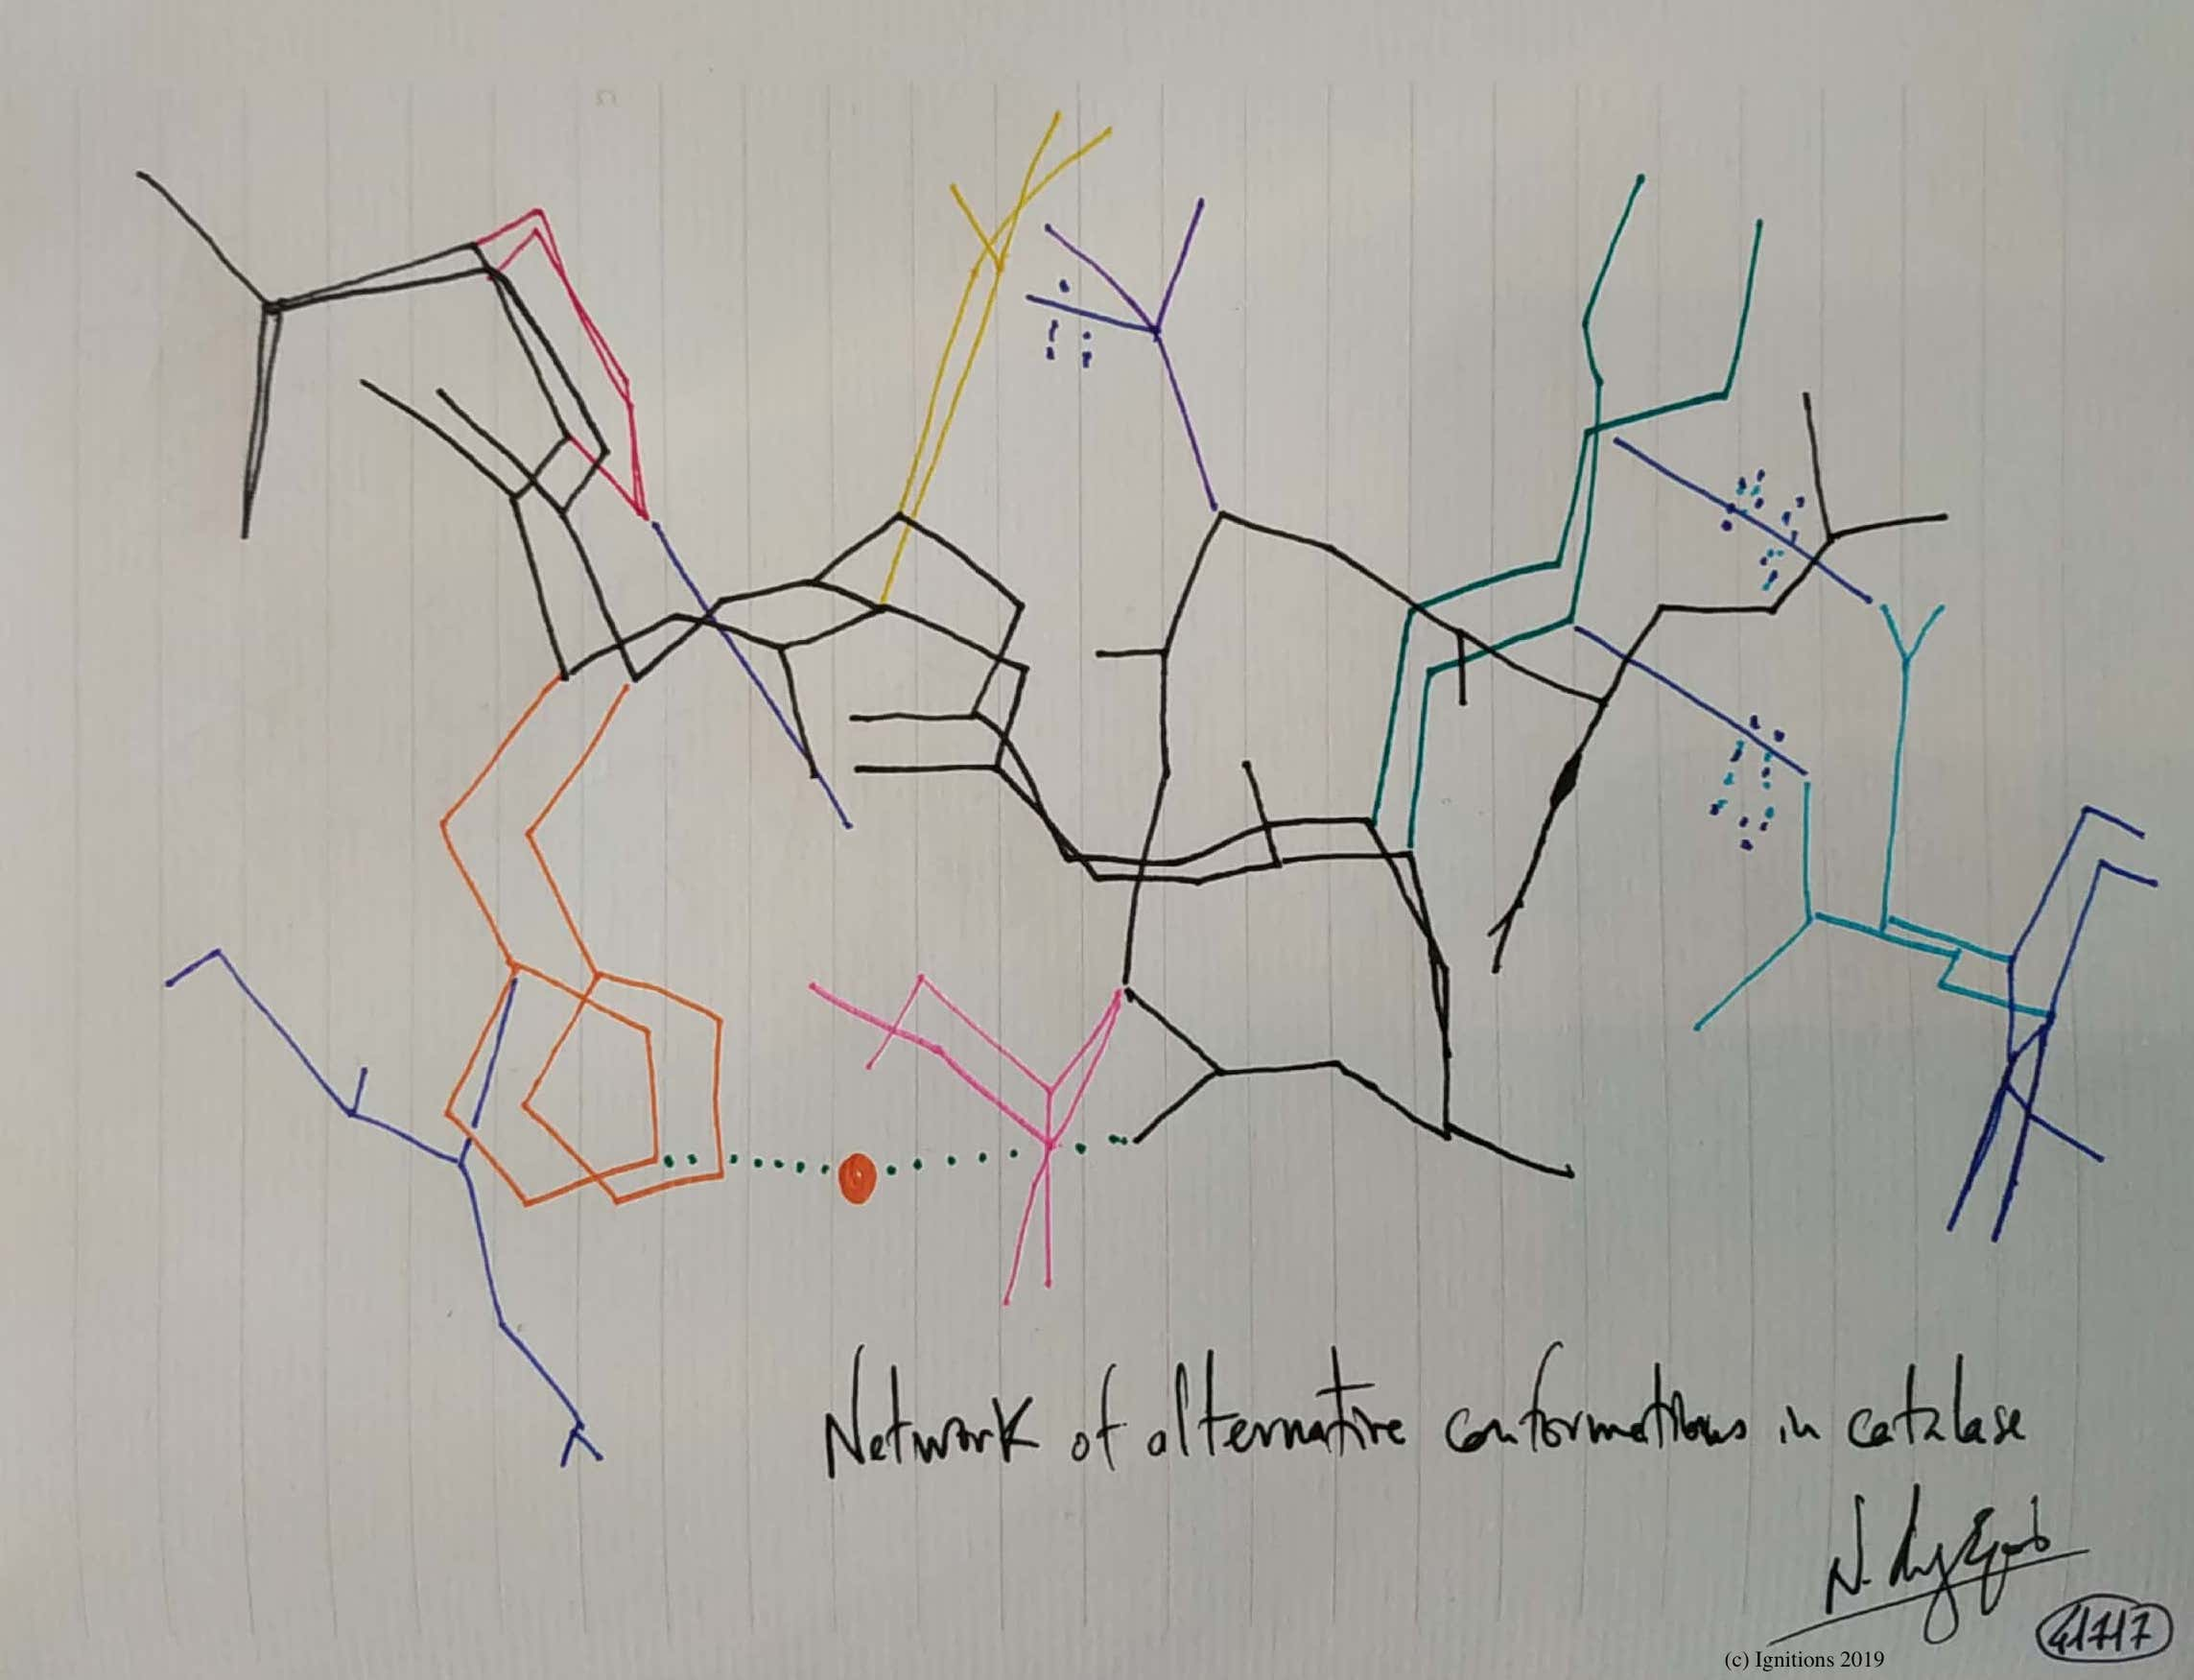 Network of alternative conformations in catalase. (Dessin)